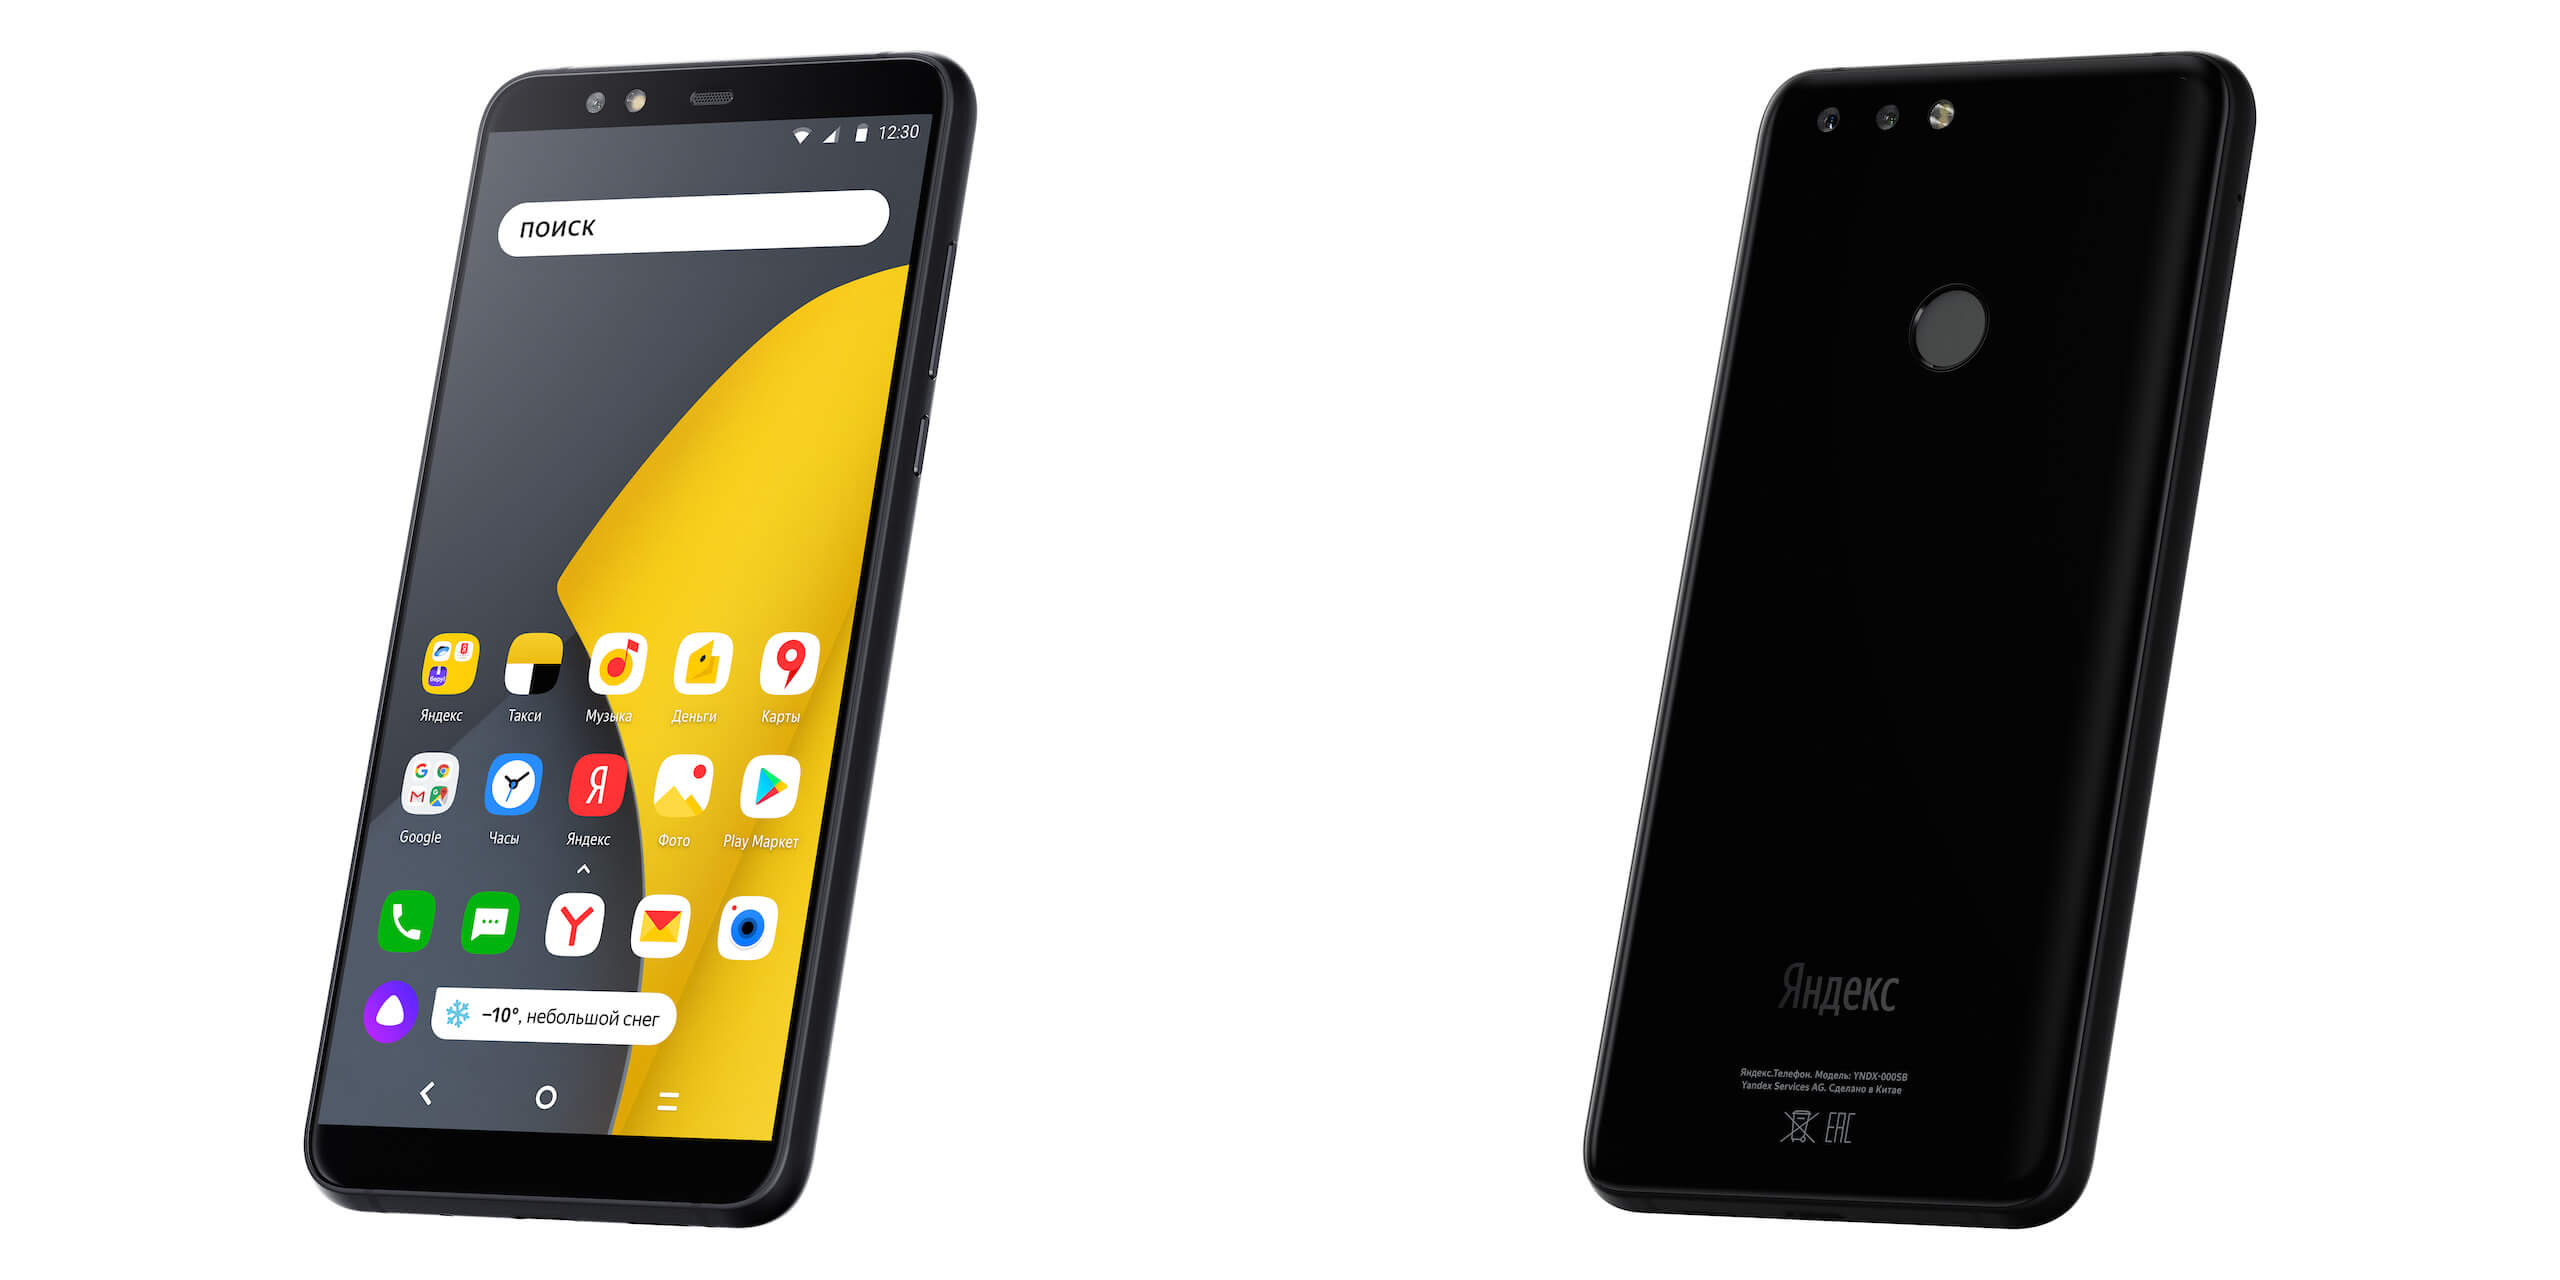 Yandex, the Russian Google has released its own smartphone